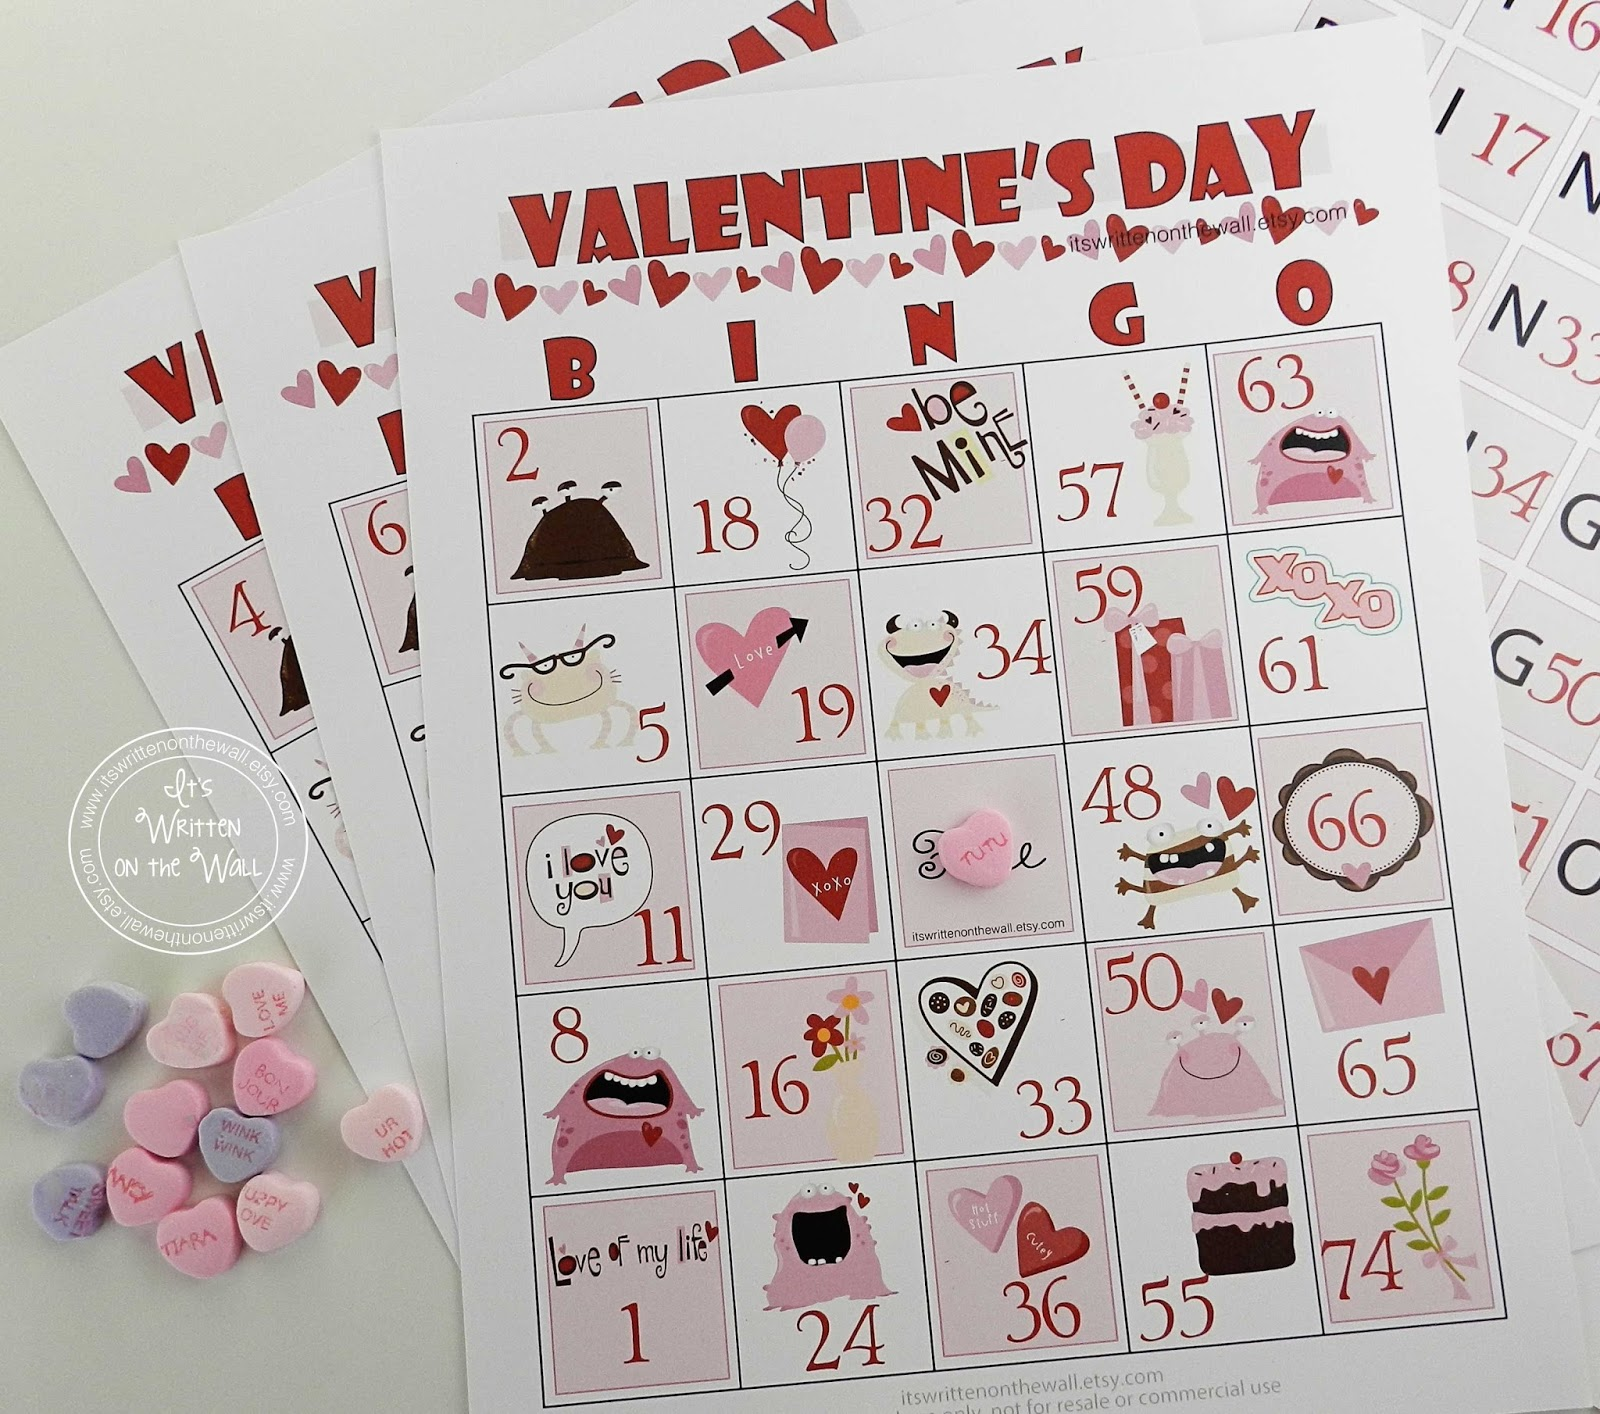 A Valentineu0027s Day Bingo Game For Kids And School Parties! Plus Cute Tags